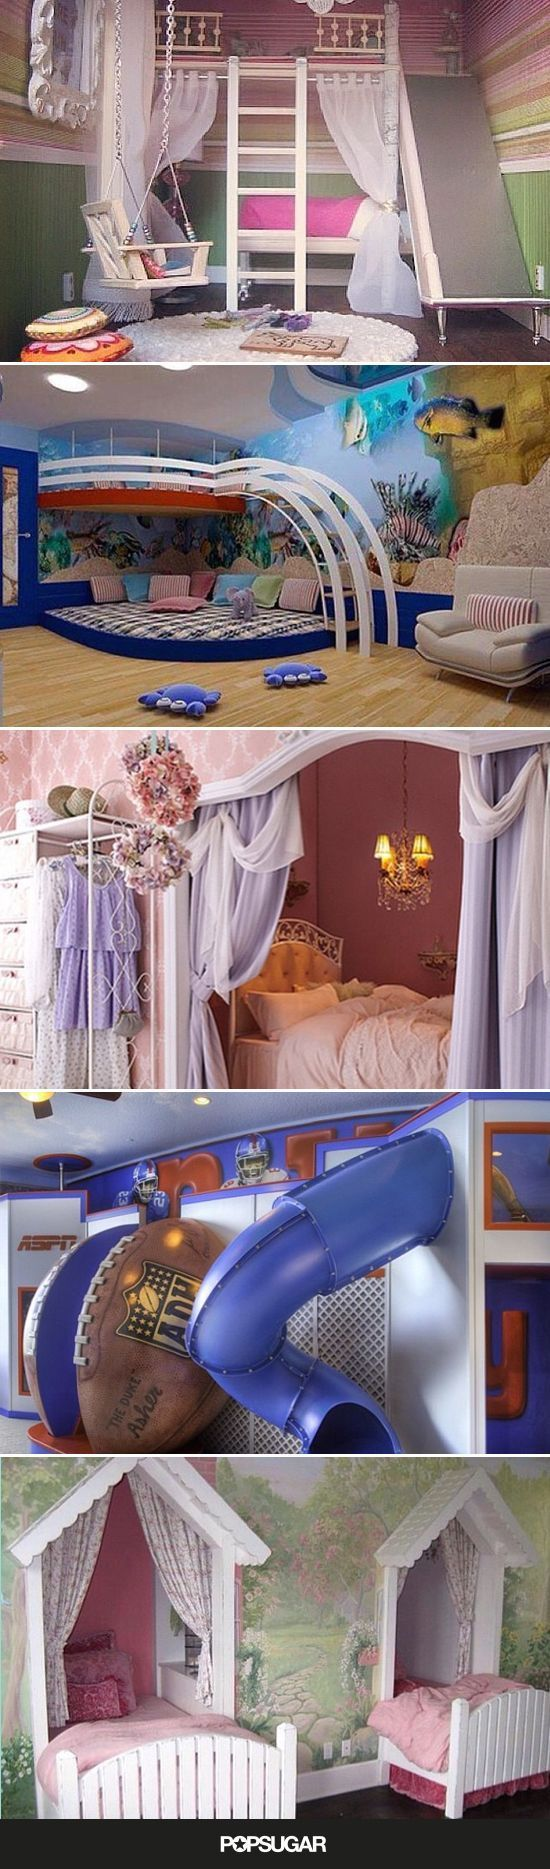 Best 25 Cool room decor ideas on Pinterest Diy for room Modern